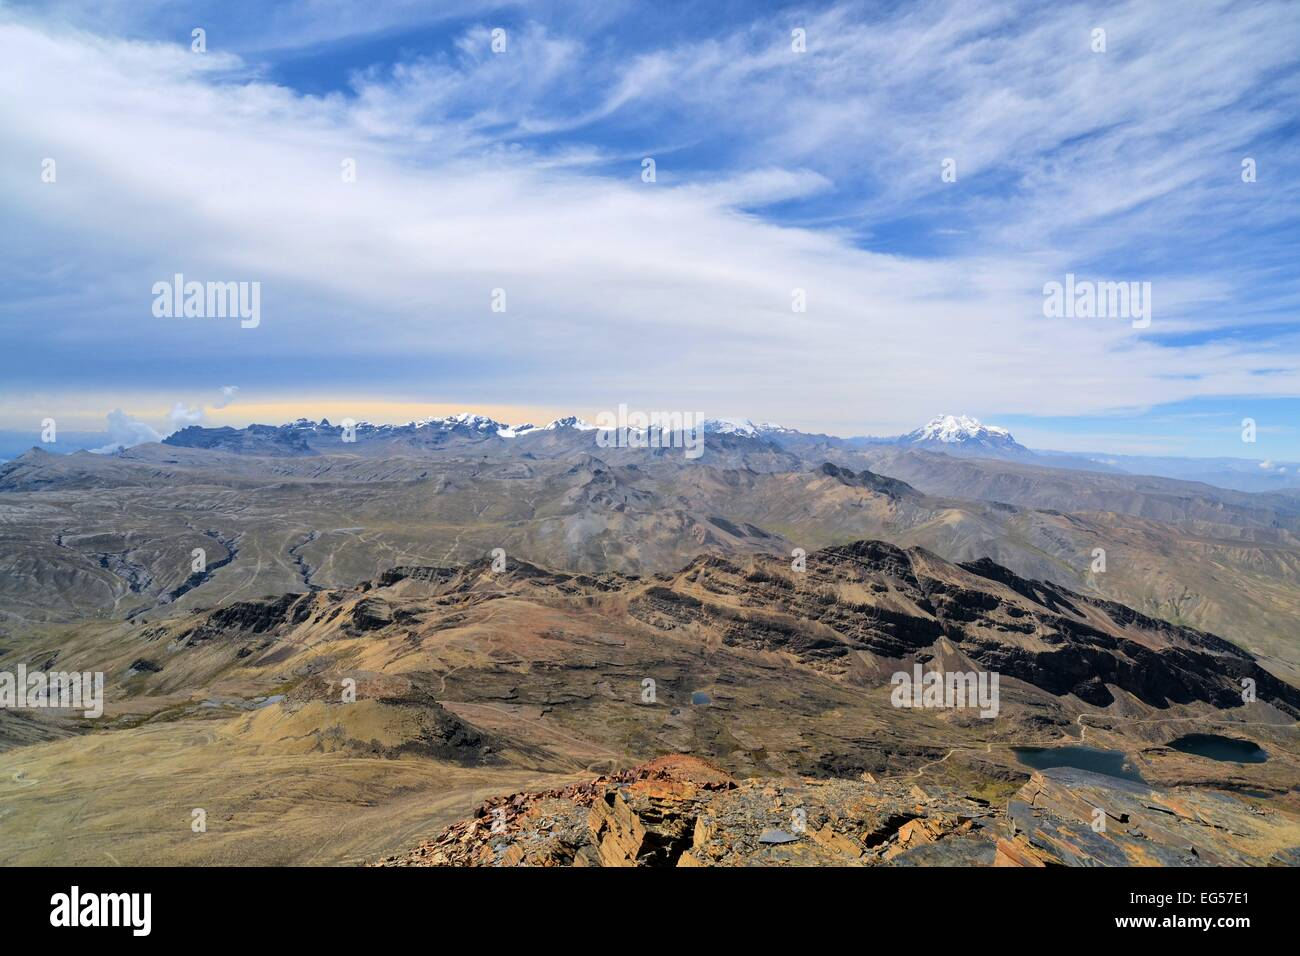 View of Huayna Potosi in Cordillera Real from Chacaltaya Range near La Paz, Bolivian Andes Stock Photo